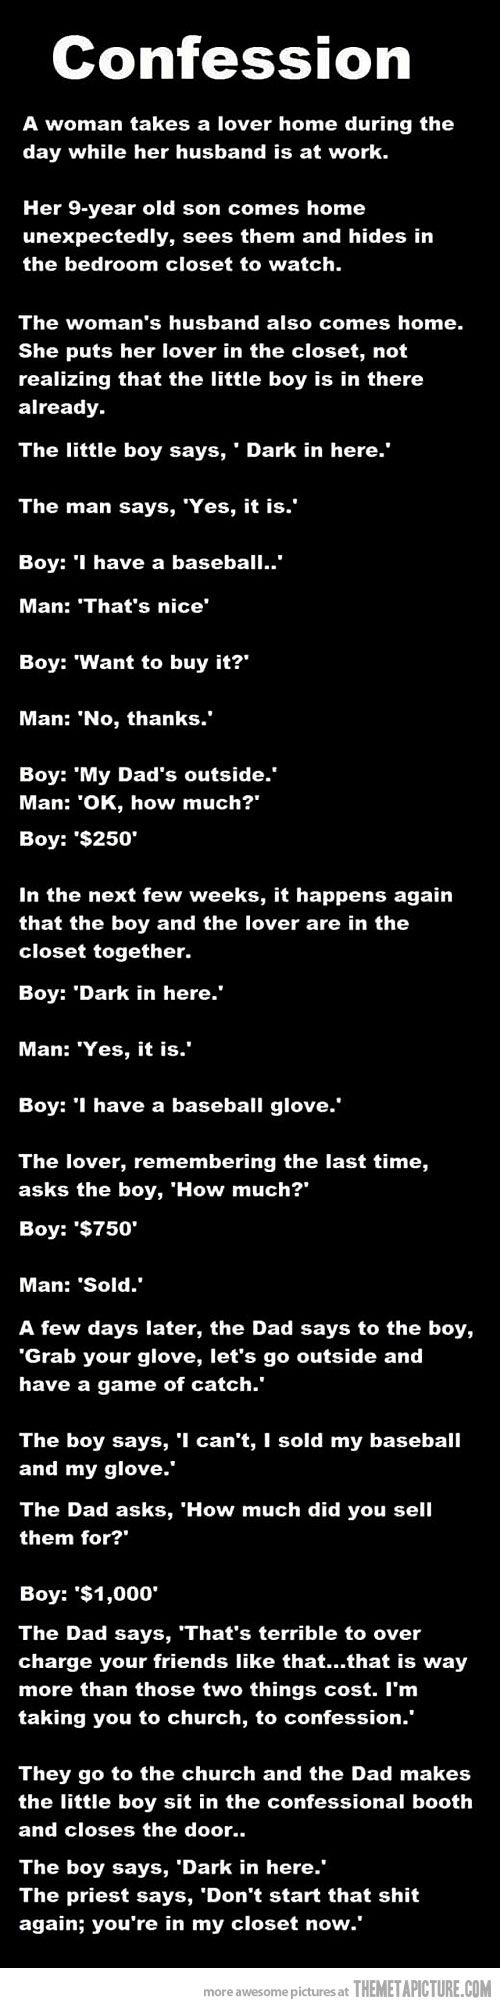 read all the way through, its worth it!! so funny!!